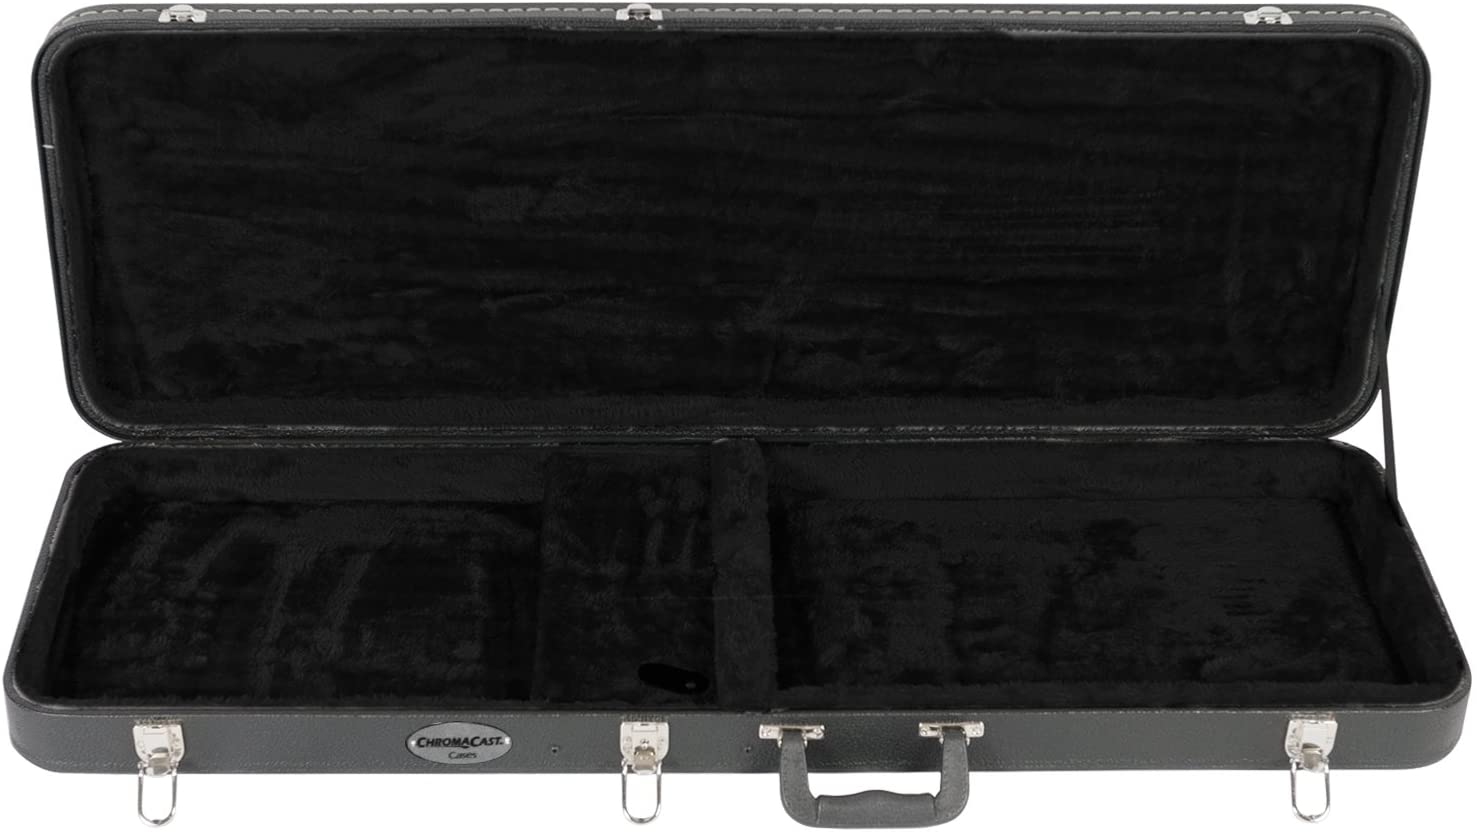 ChromaCast CC-EHC Electric Guitar Hard Case - Protective Guitar Cases